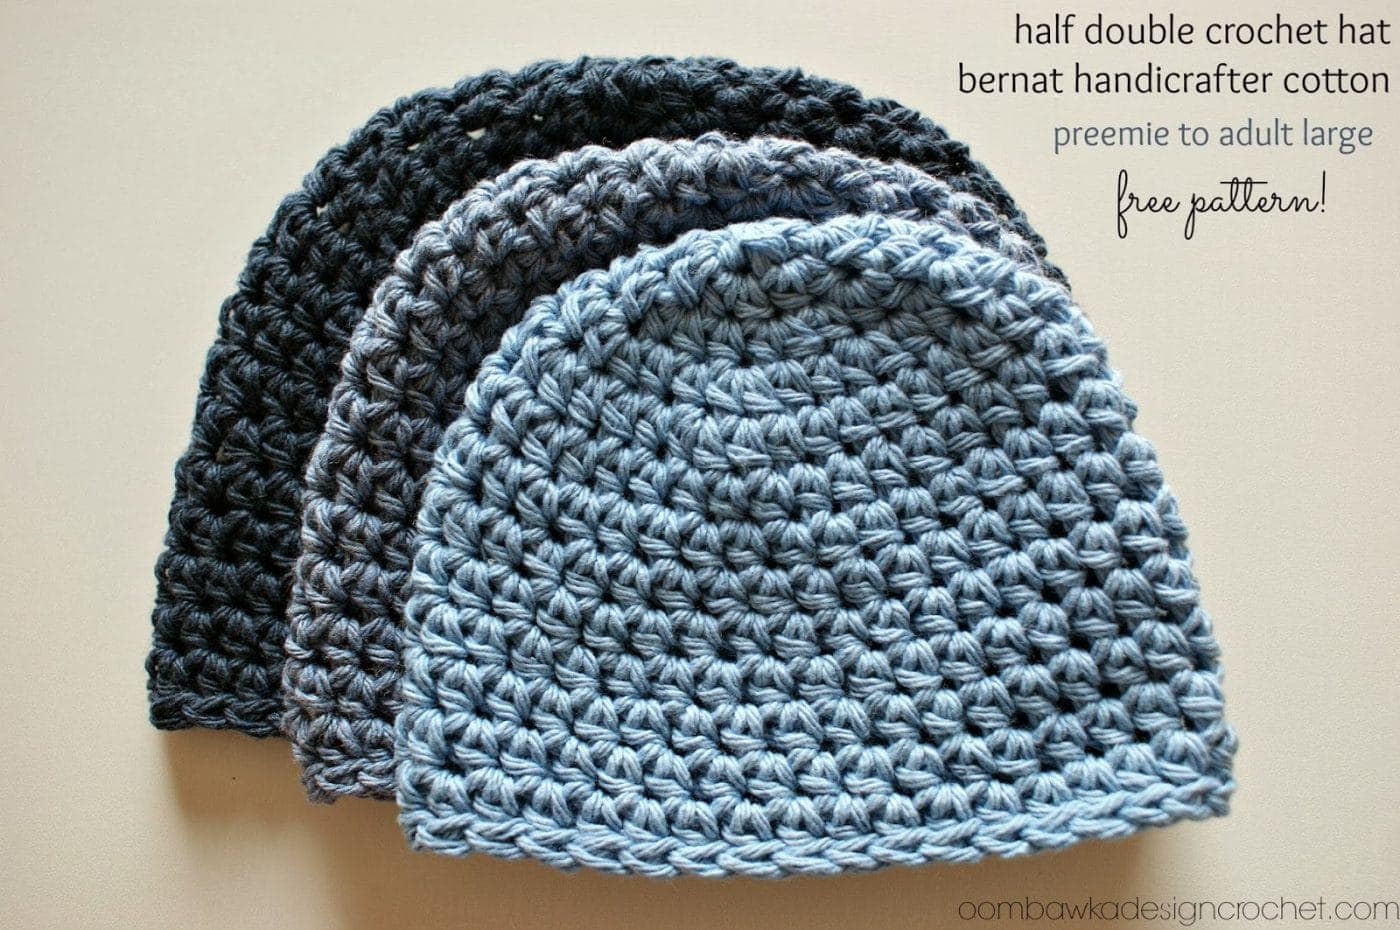 Crocheting Hats Patterns : ... Double Crochet Hat Pattern #2 Free Pattern ? Oombawka Design Crochet